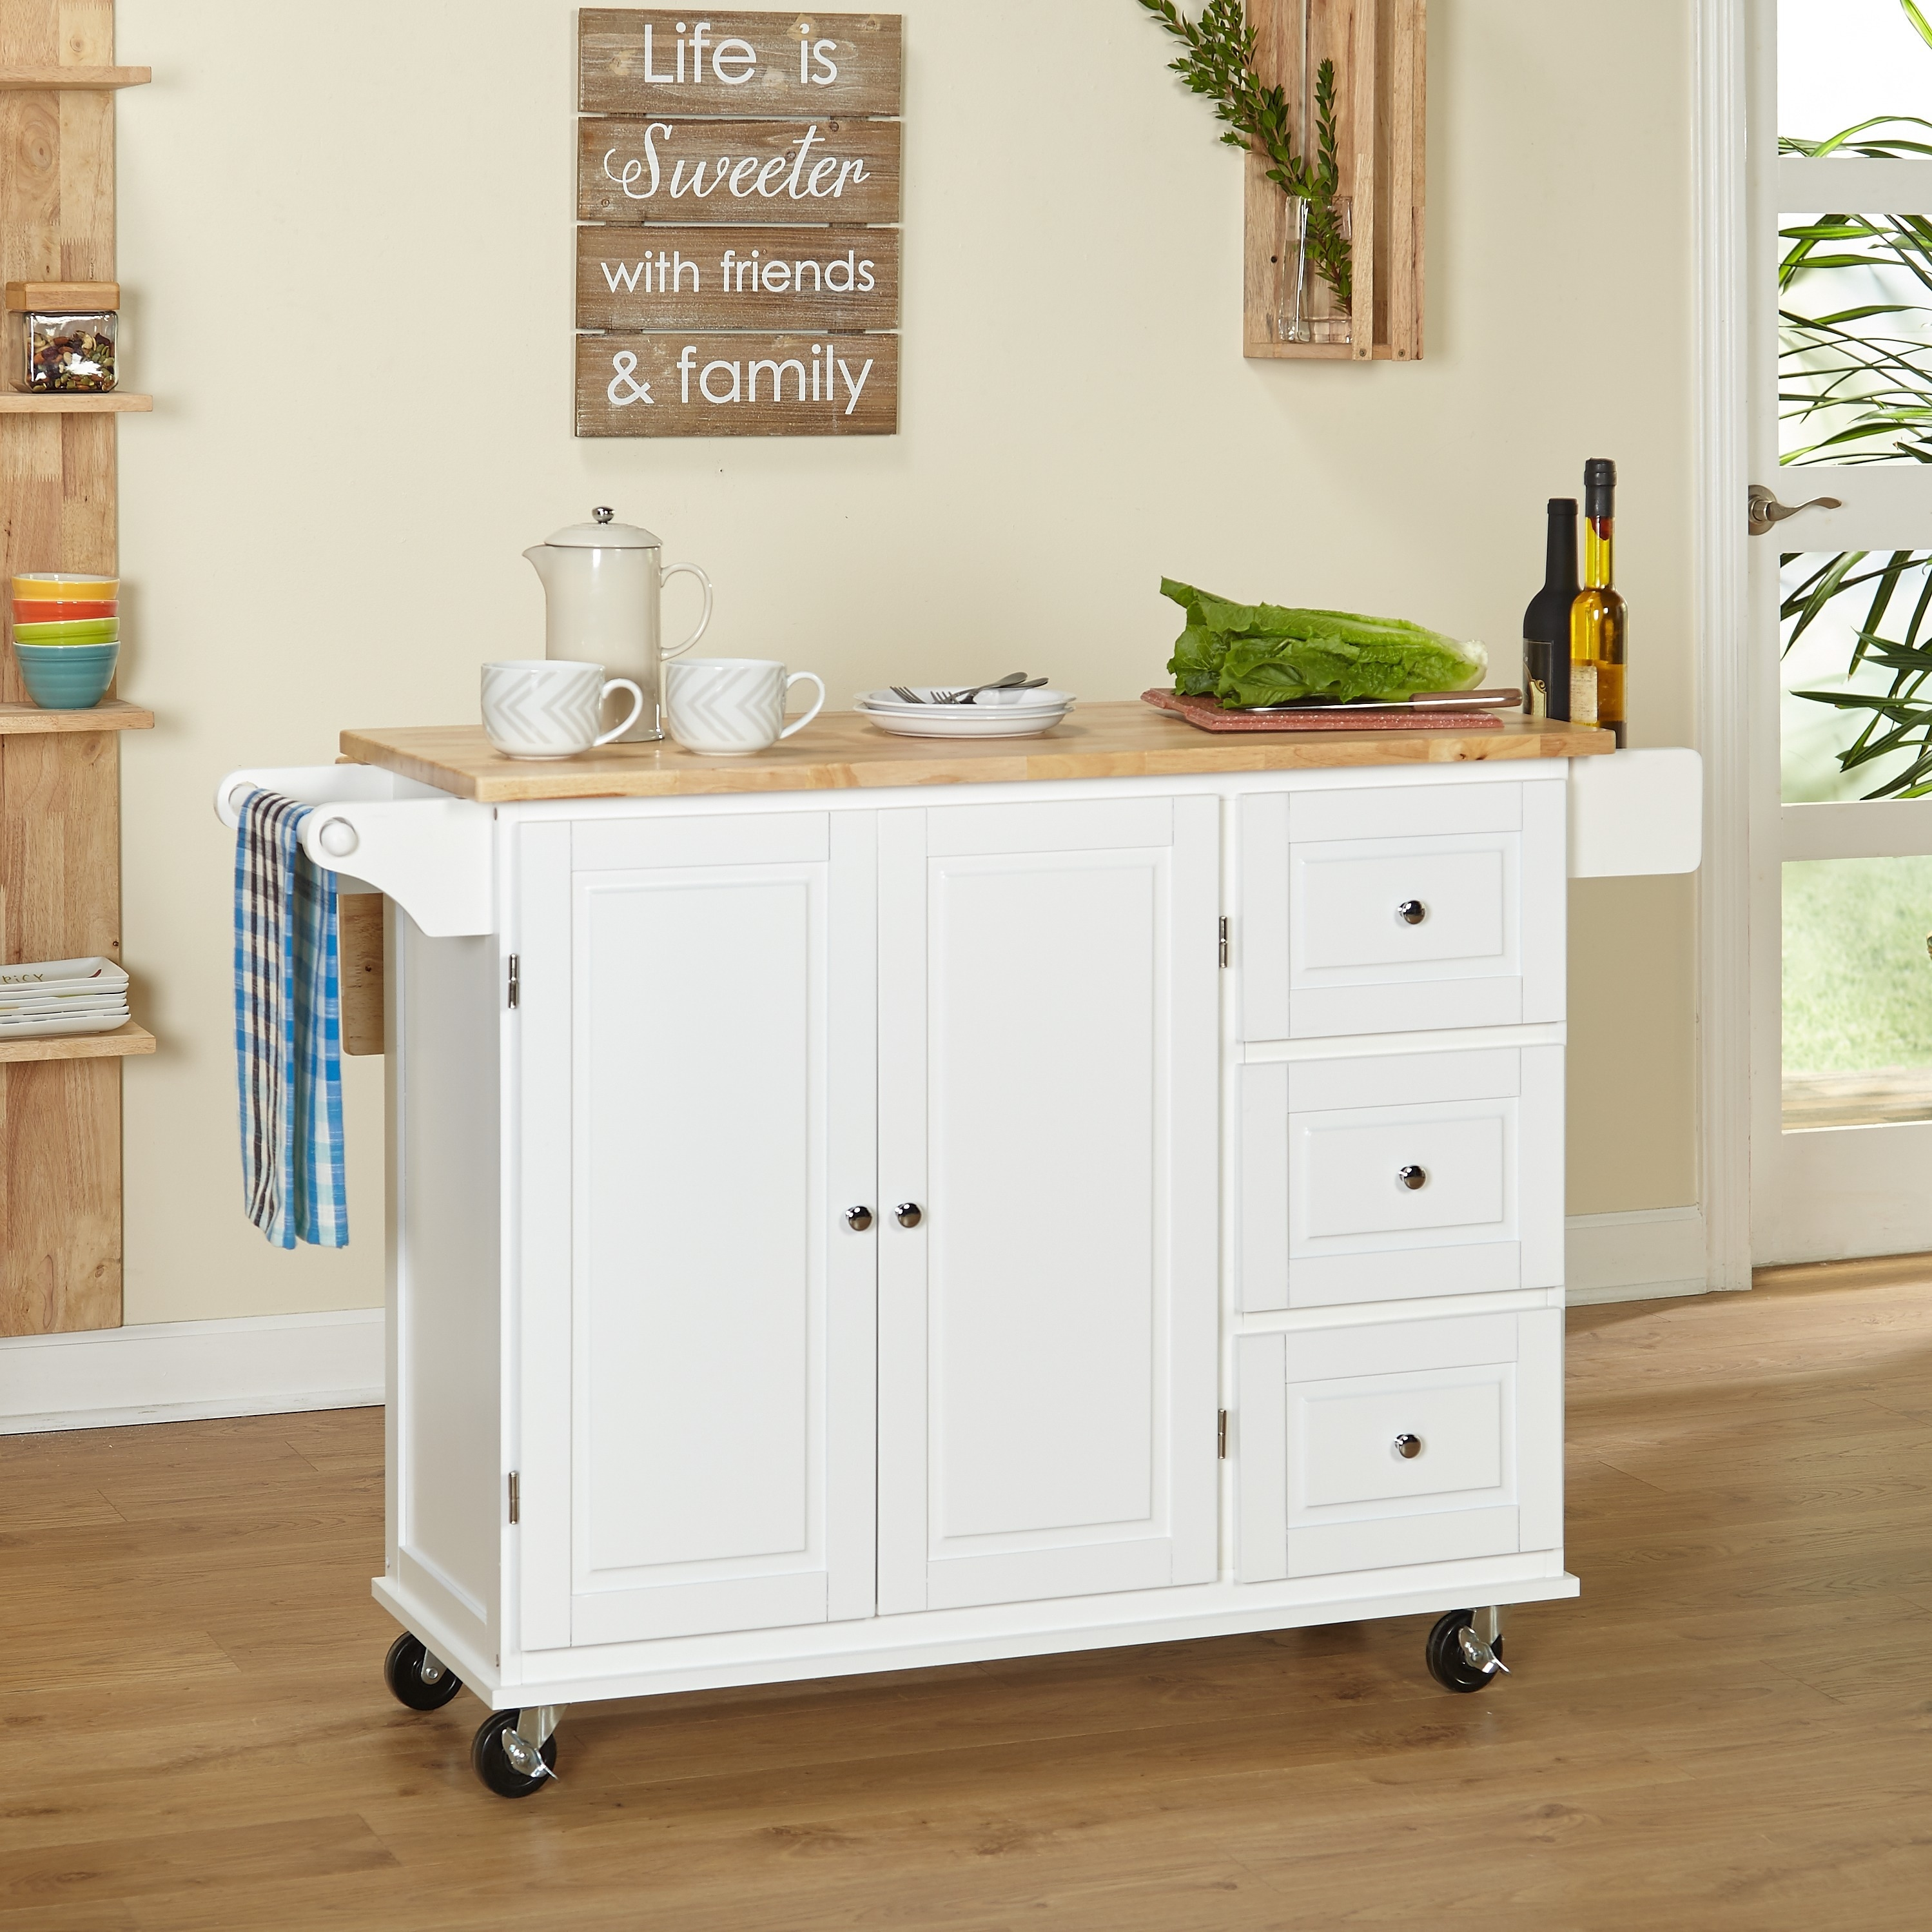 Overstock.com Aspen 3-drawer Spice Rack Drop Leaf Kitchen Cart at Sears.com